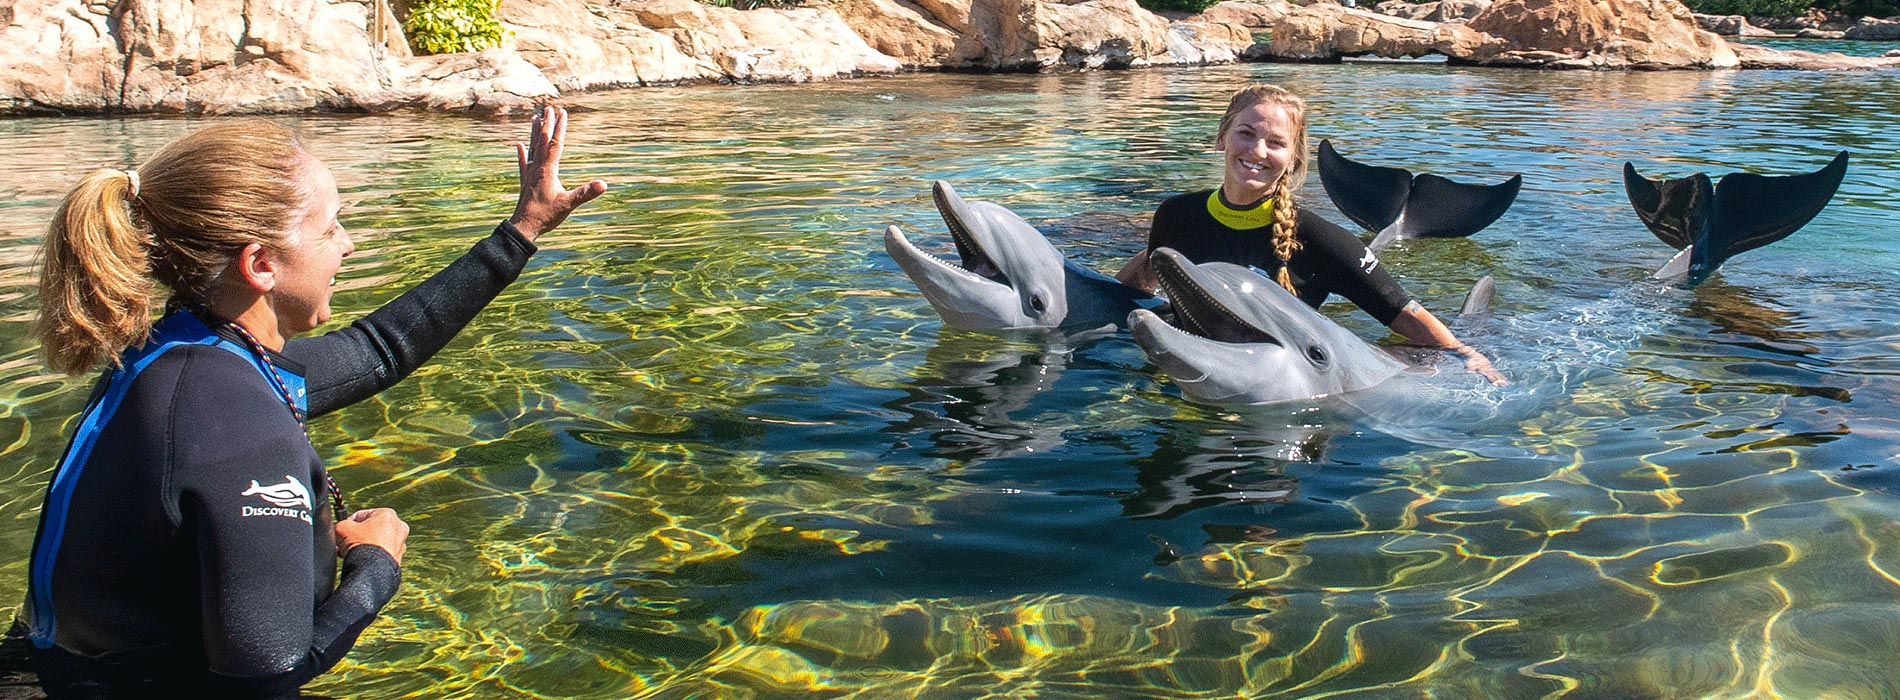 Discovery Cove Orlando Trainer for a Day